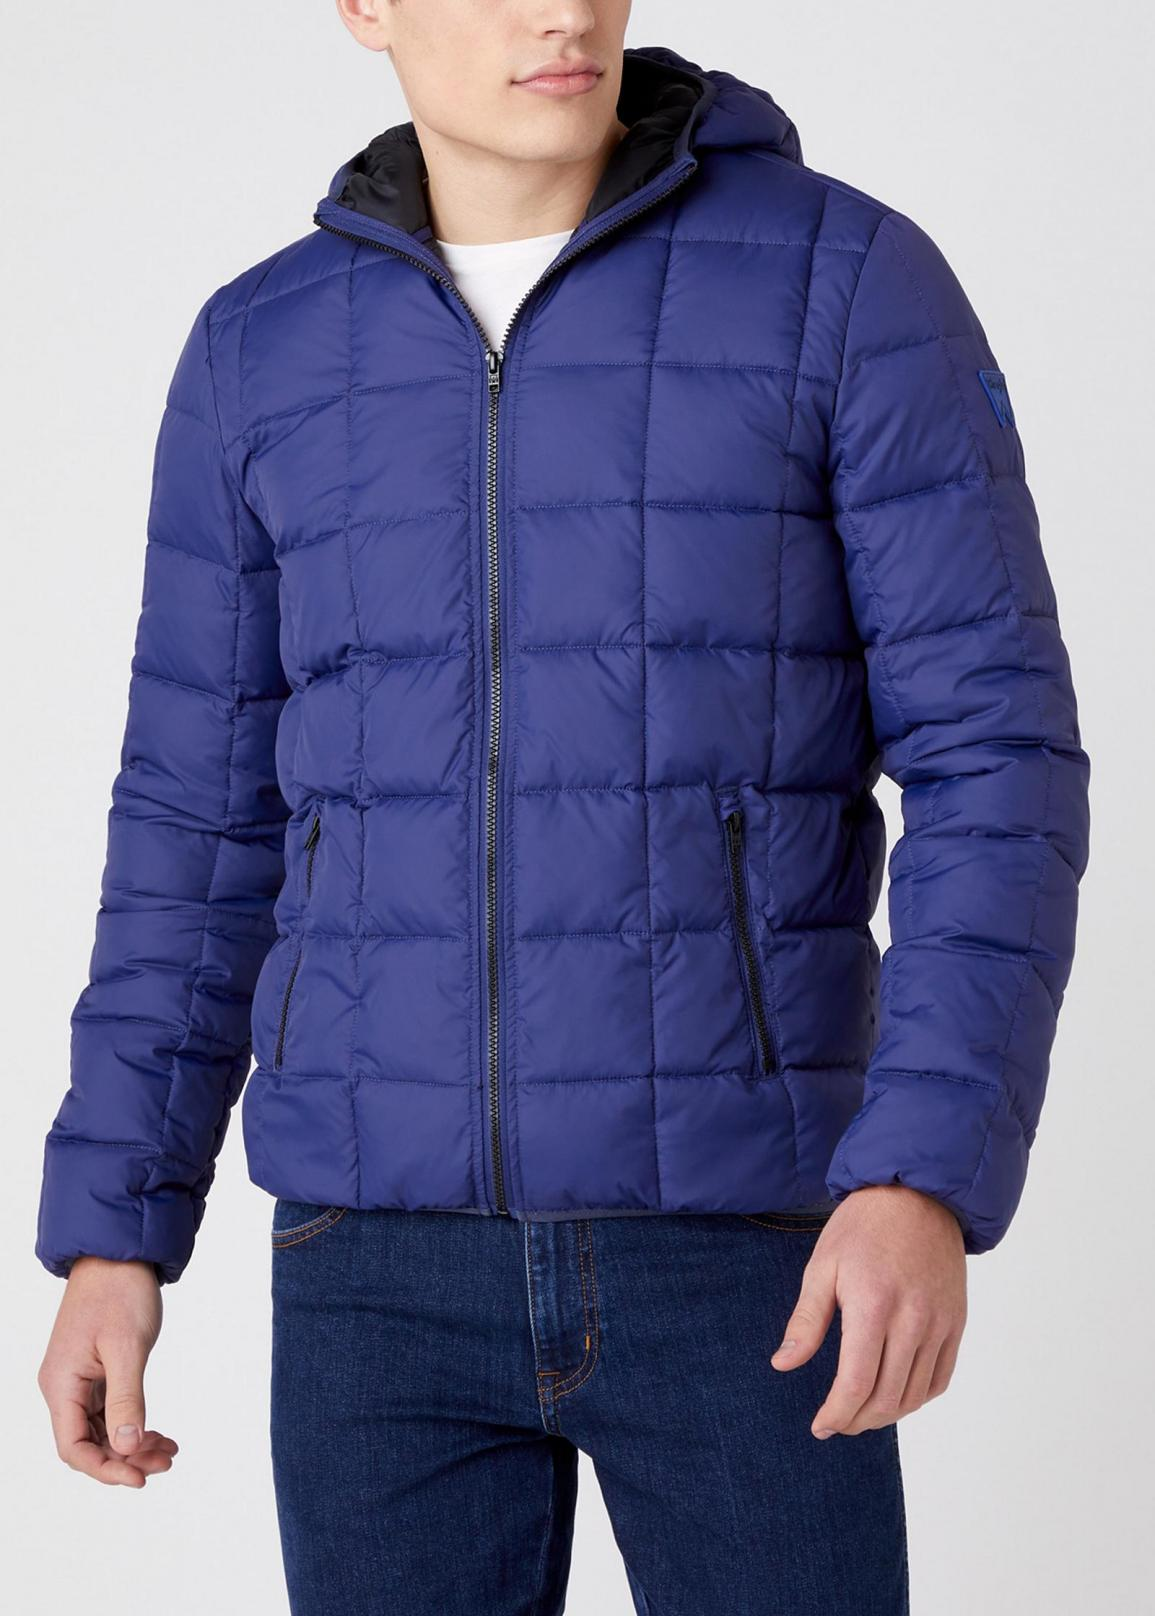 Wrangler® Puffer Jacket - Patriot Blue